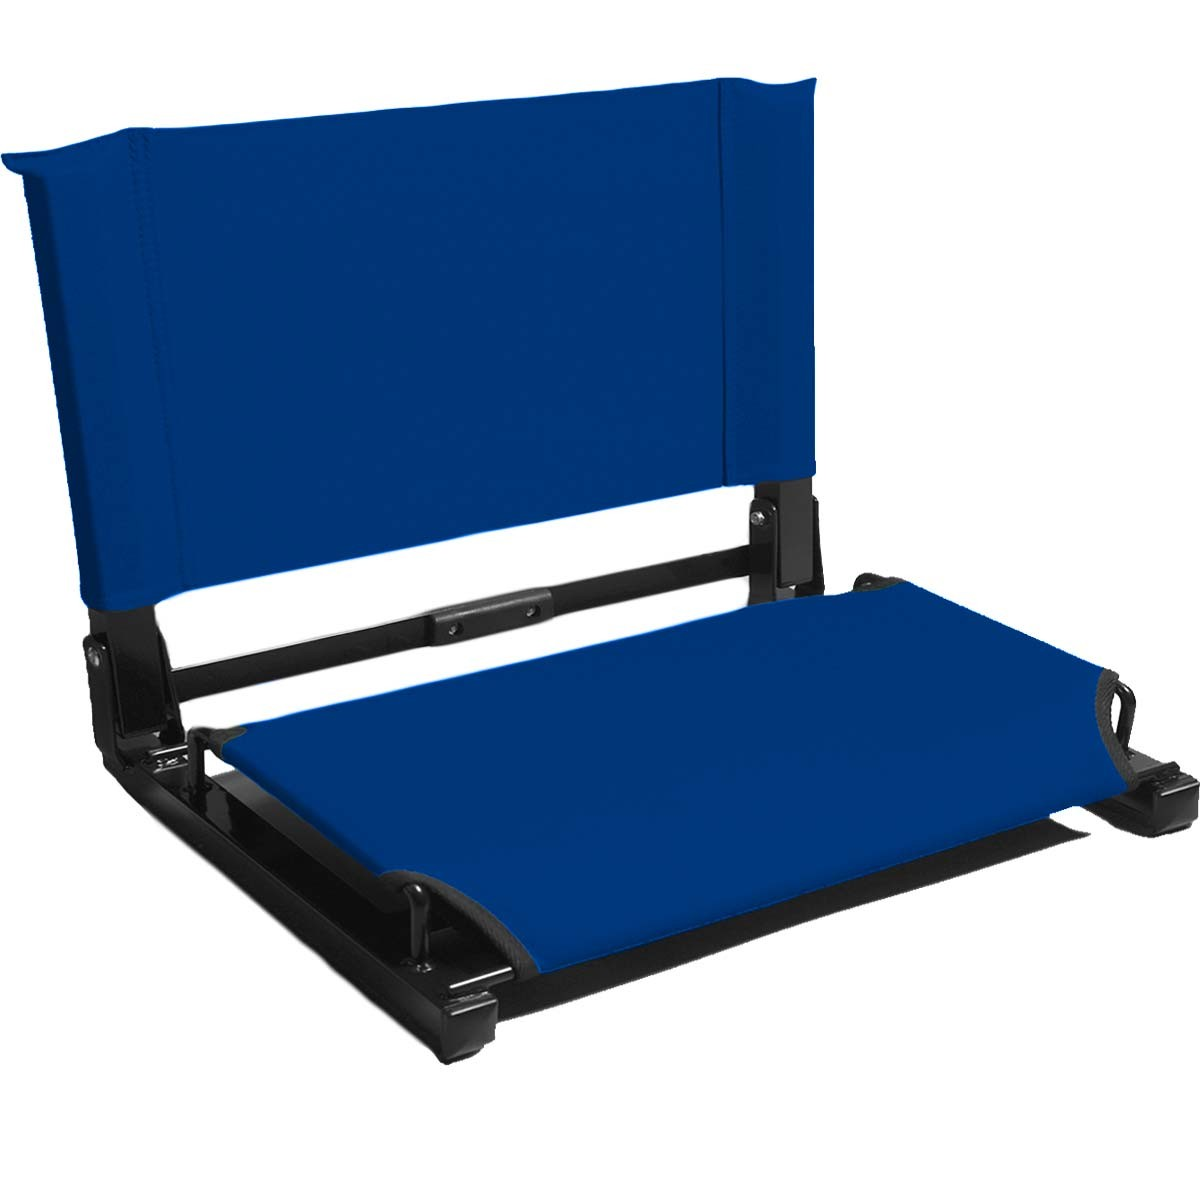 Stadium Chairs Stadium Chair Bleacher Seat Wsc1 Deluxe Model 3 Quot Wider